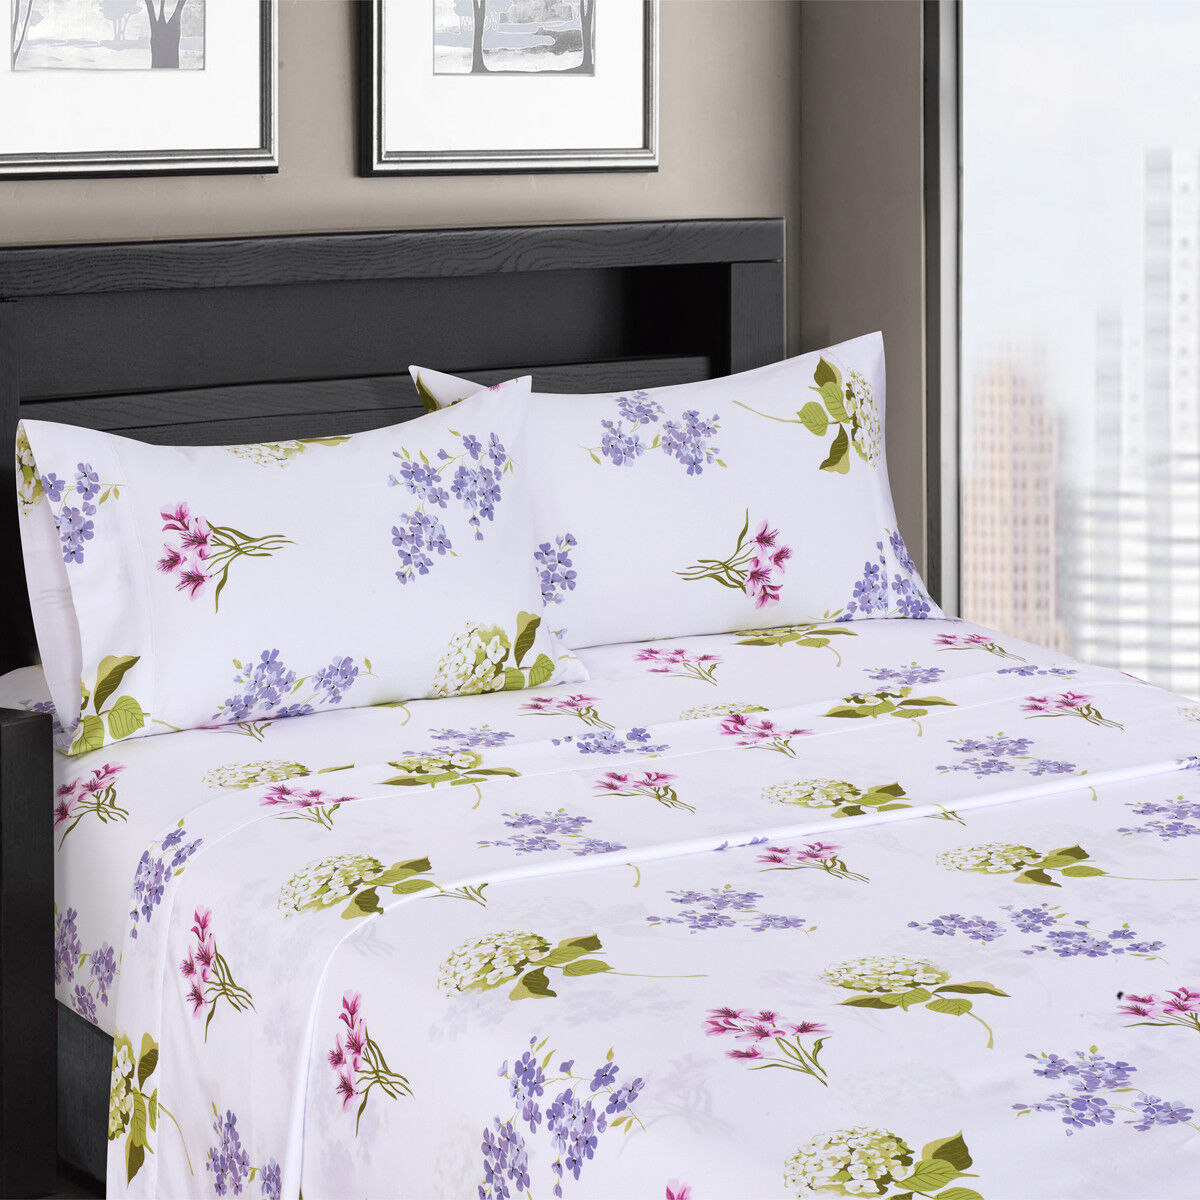 Luxury freshly floral Blossom 300 Thread count 100% Cotton Sheet Sets